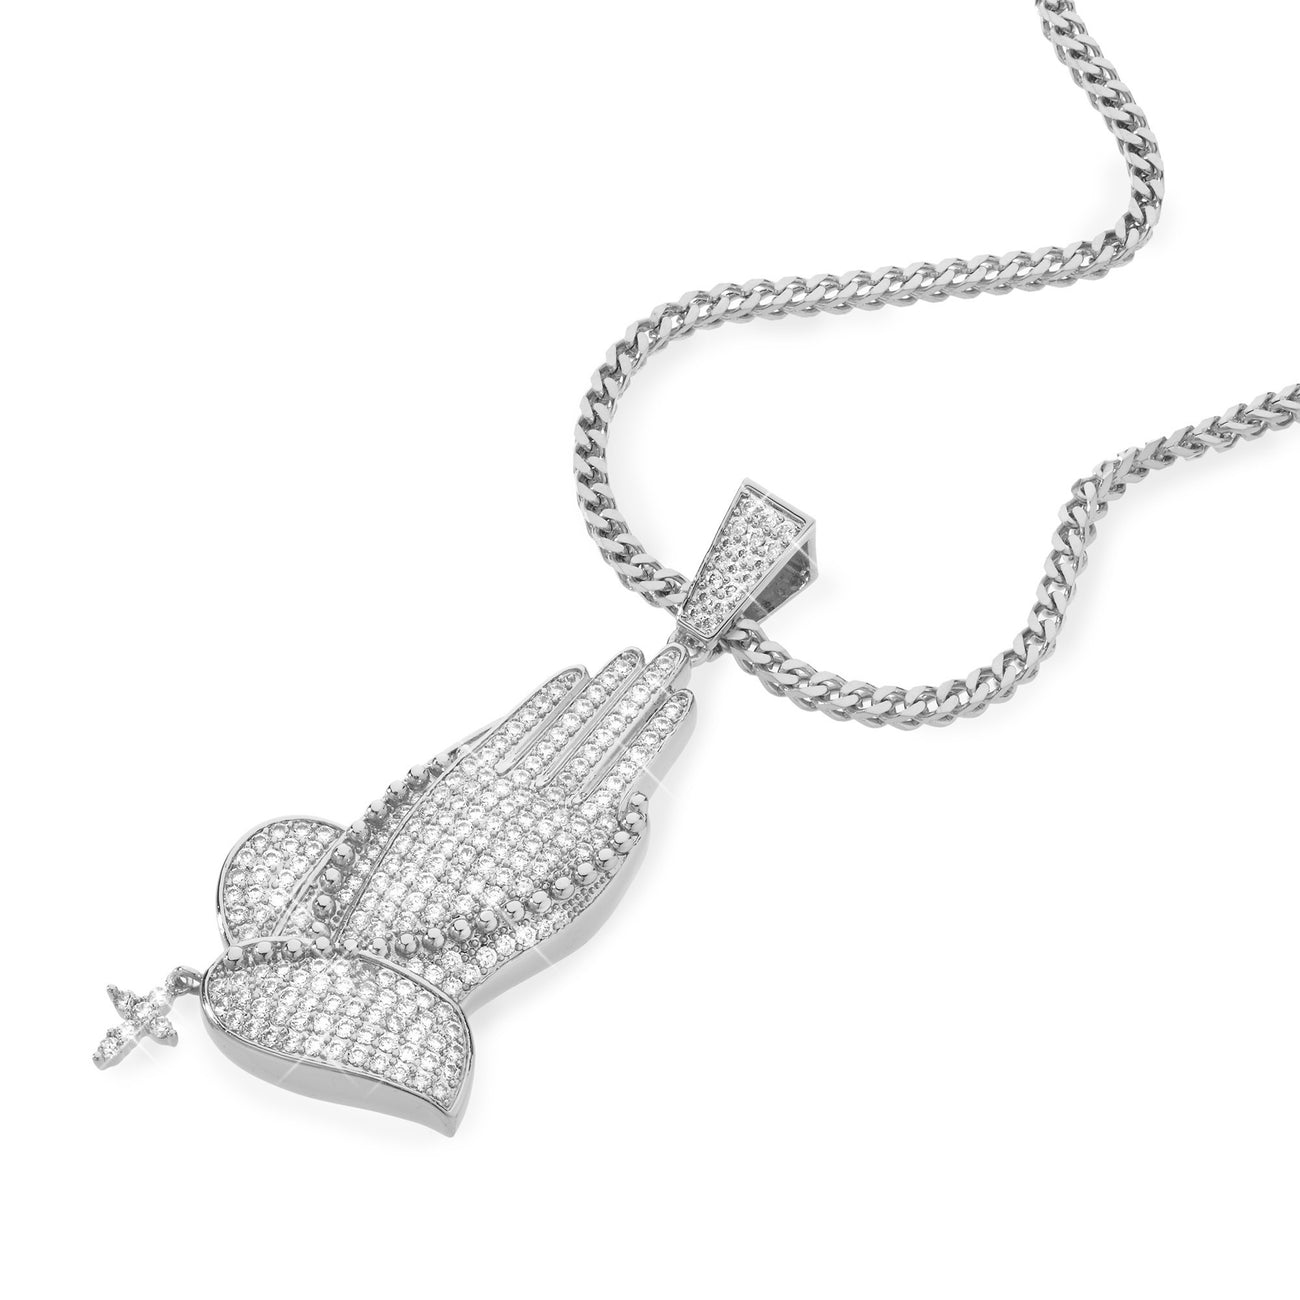 Necklace - Iced Praying Hands In Rhodium